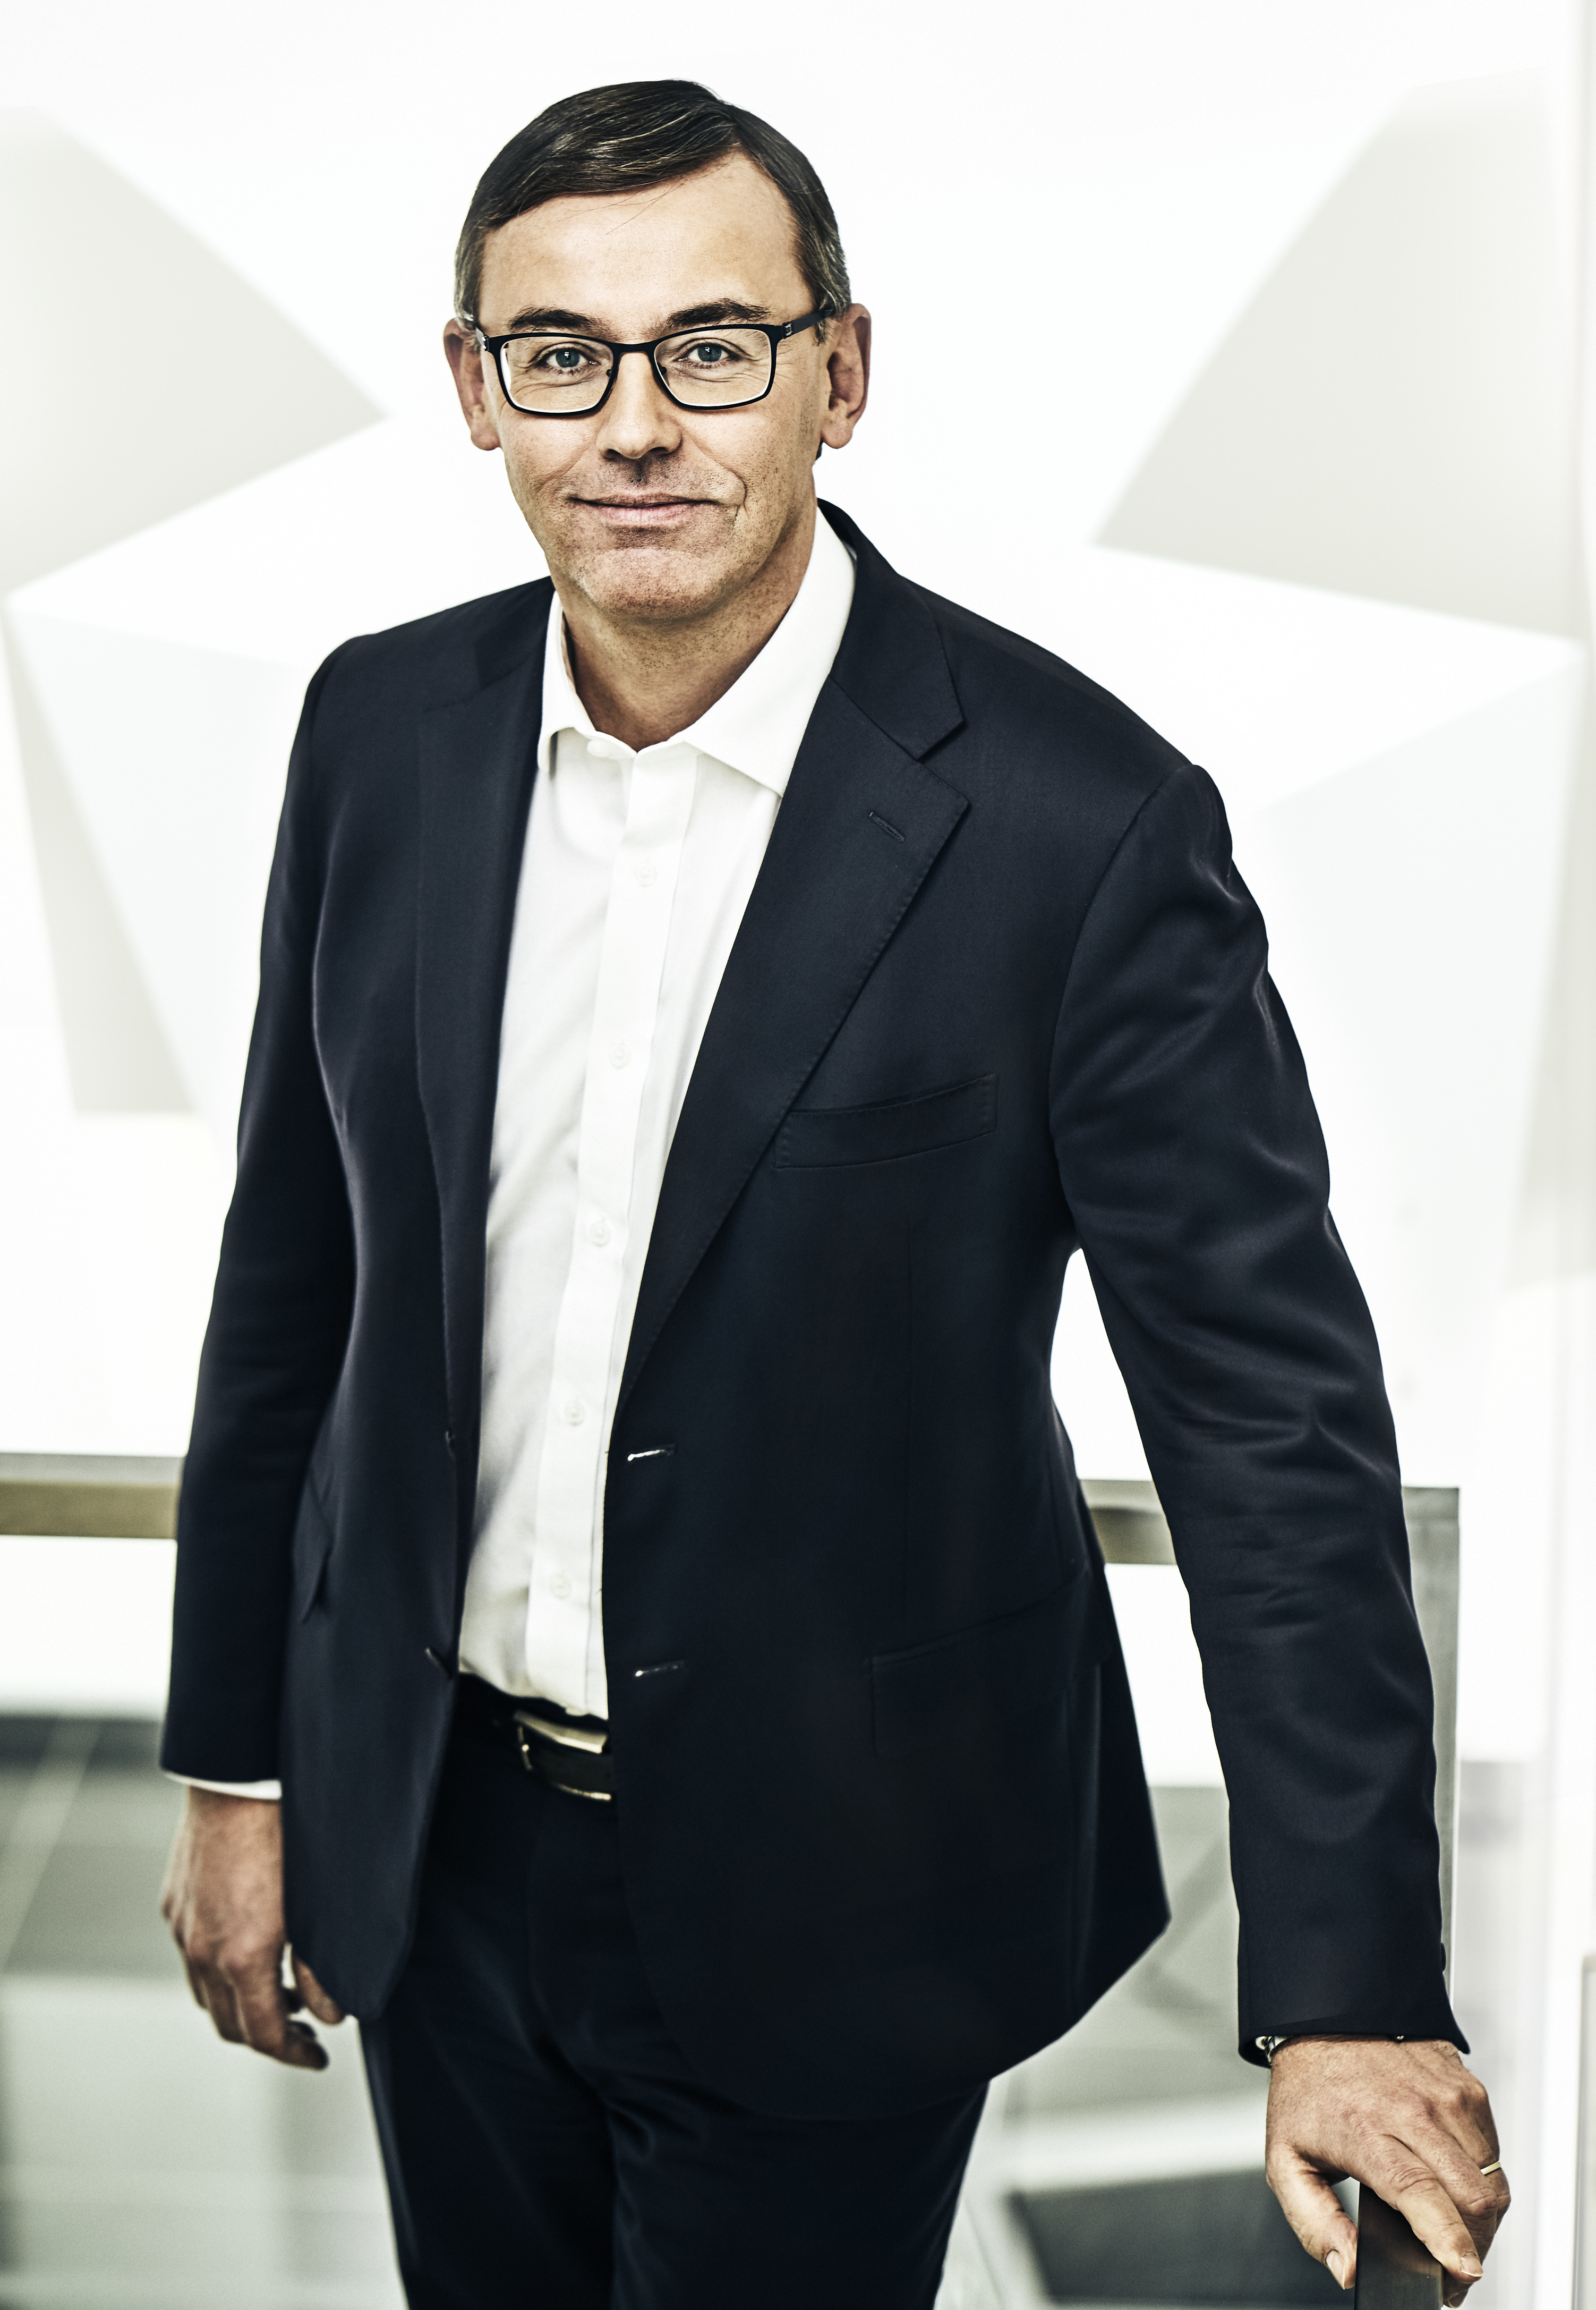 SKODA AUTO announces changes to Board of Management as of 1 March 2021 - Image 1